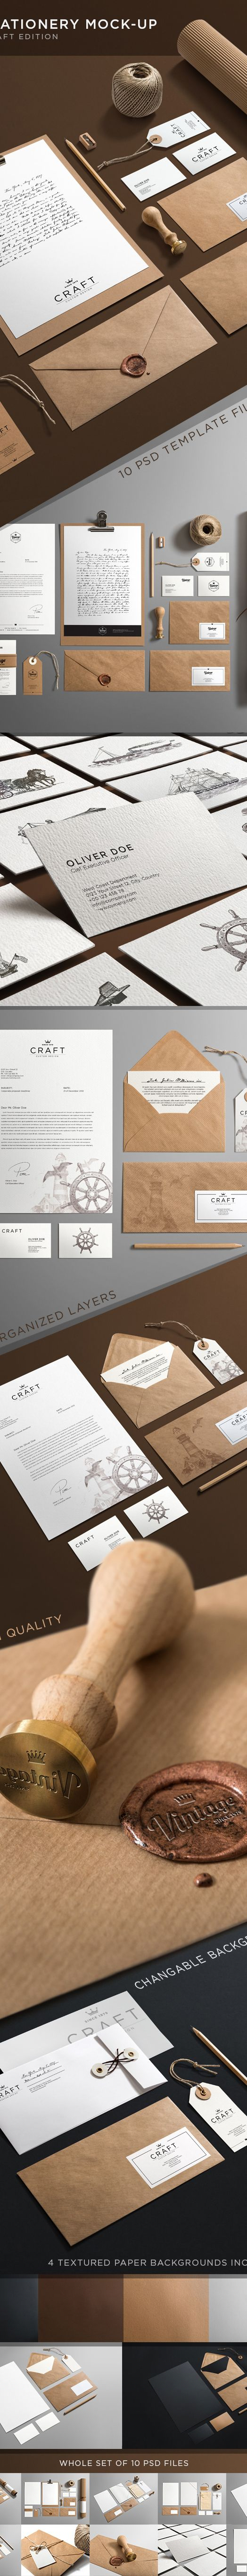 Stationery Mock-Up by Andrej Sevkovskij, via Behance